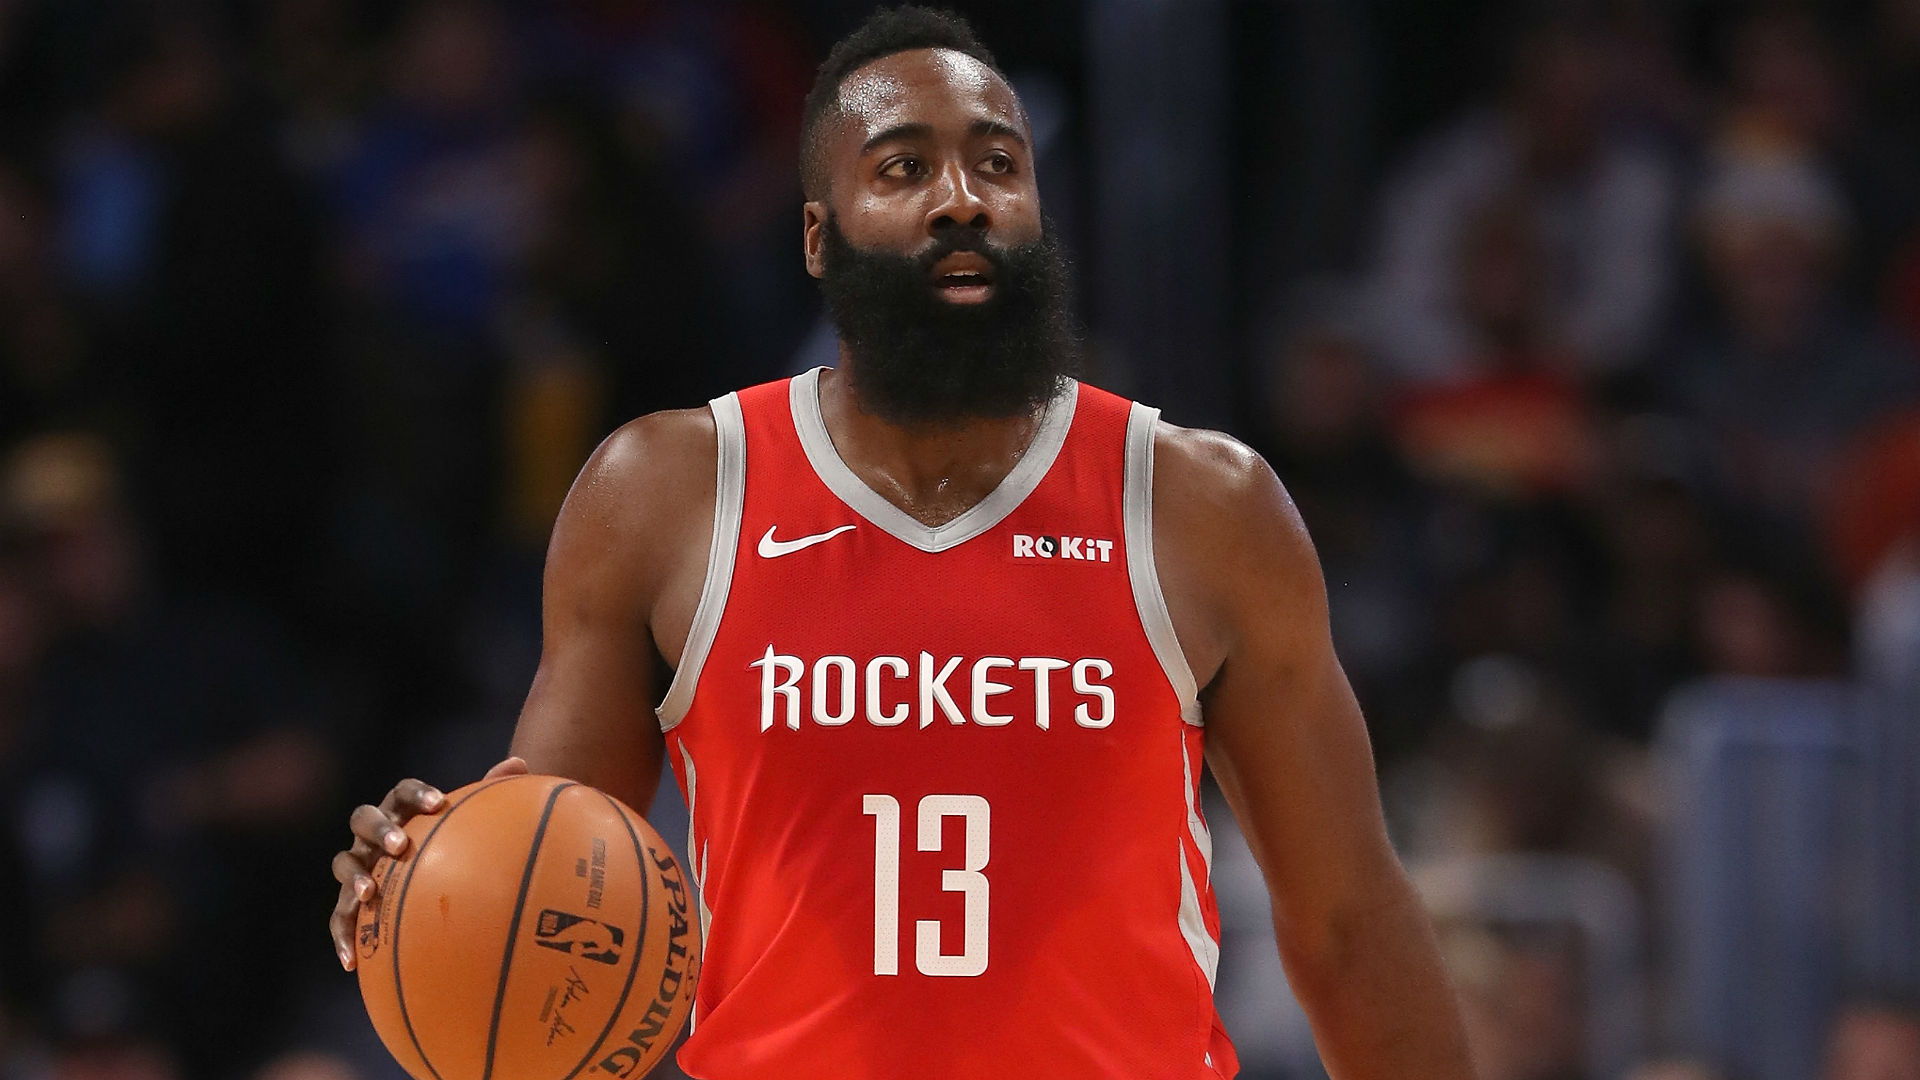 Rockets star James Harden matches Wilt Chamberlain with historic 1920x1080